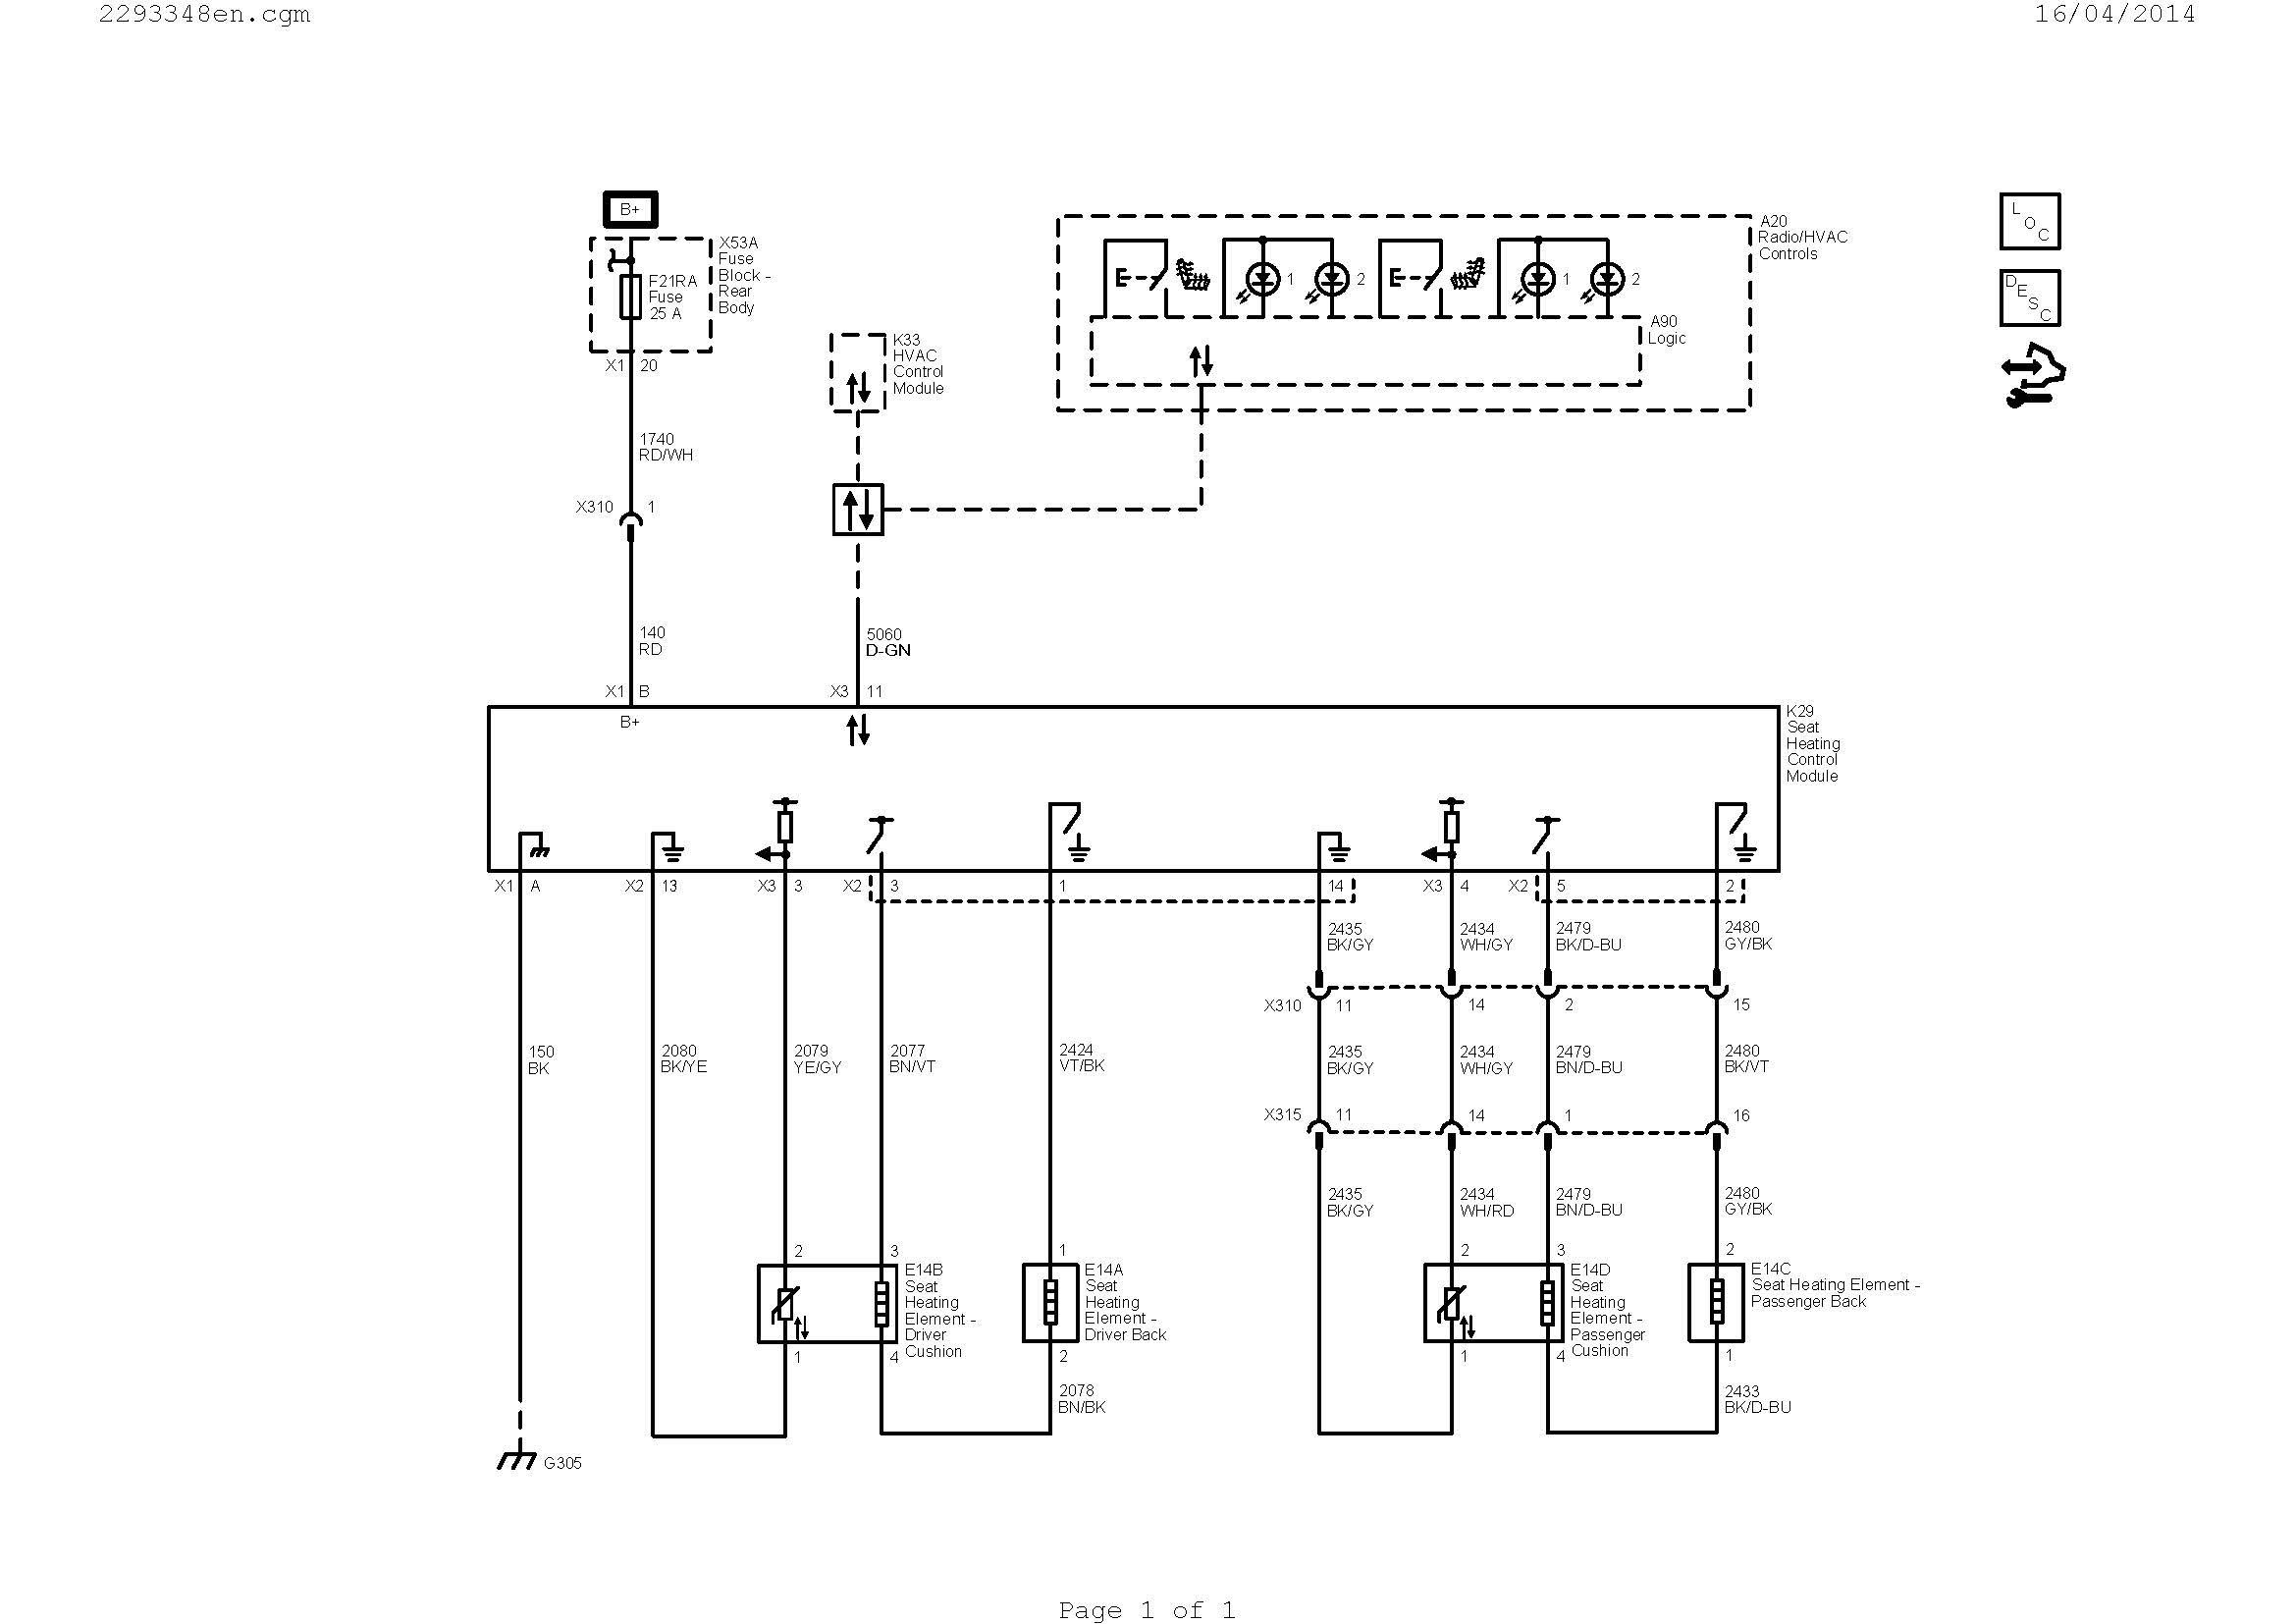 painless wiring switch panel diagram Collection-Wiring Diagram for Kohler Engine Valid Mechanical Engineering Painless Wiring Diagram Download 5-r